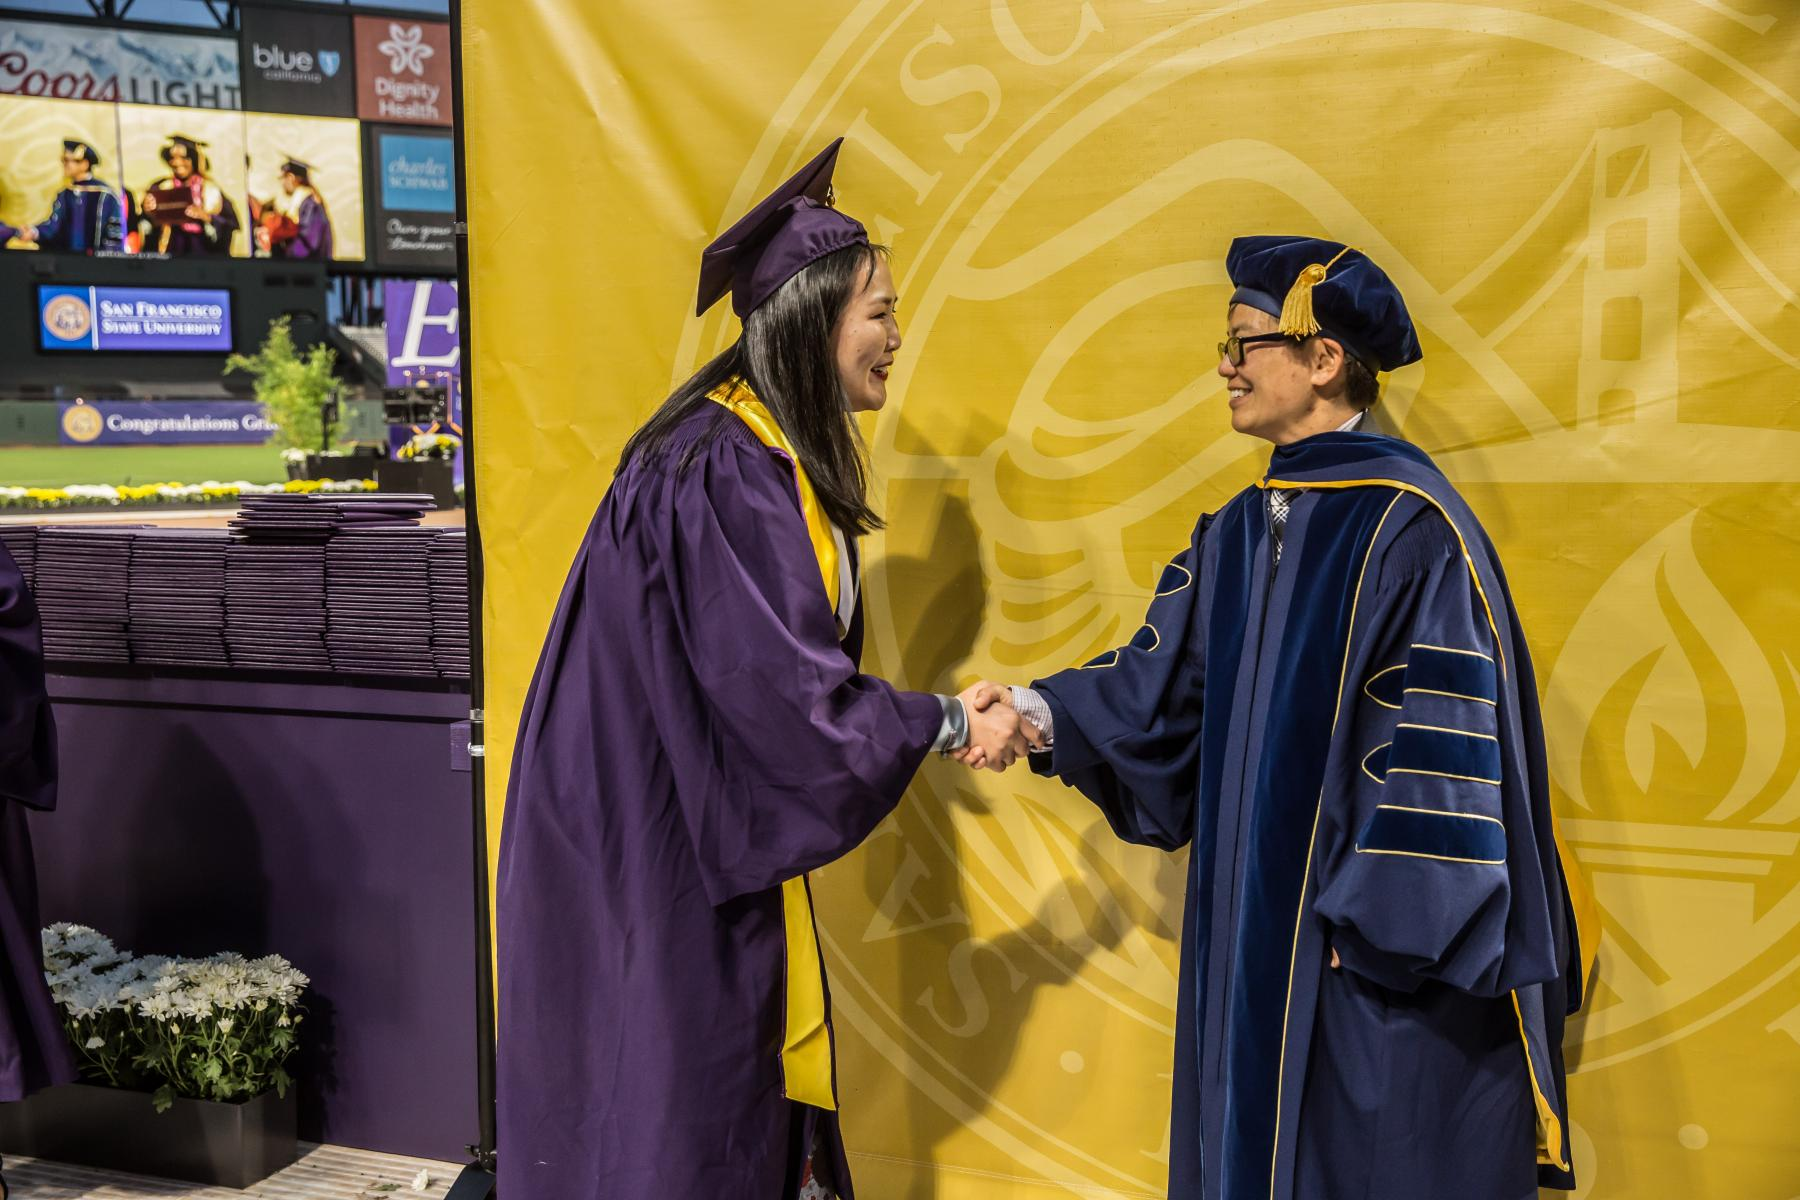 Dean Amy Sueyoshi greets a graduating student at Commencement